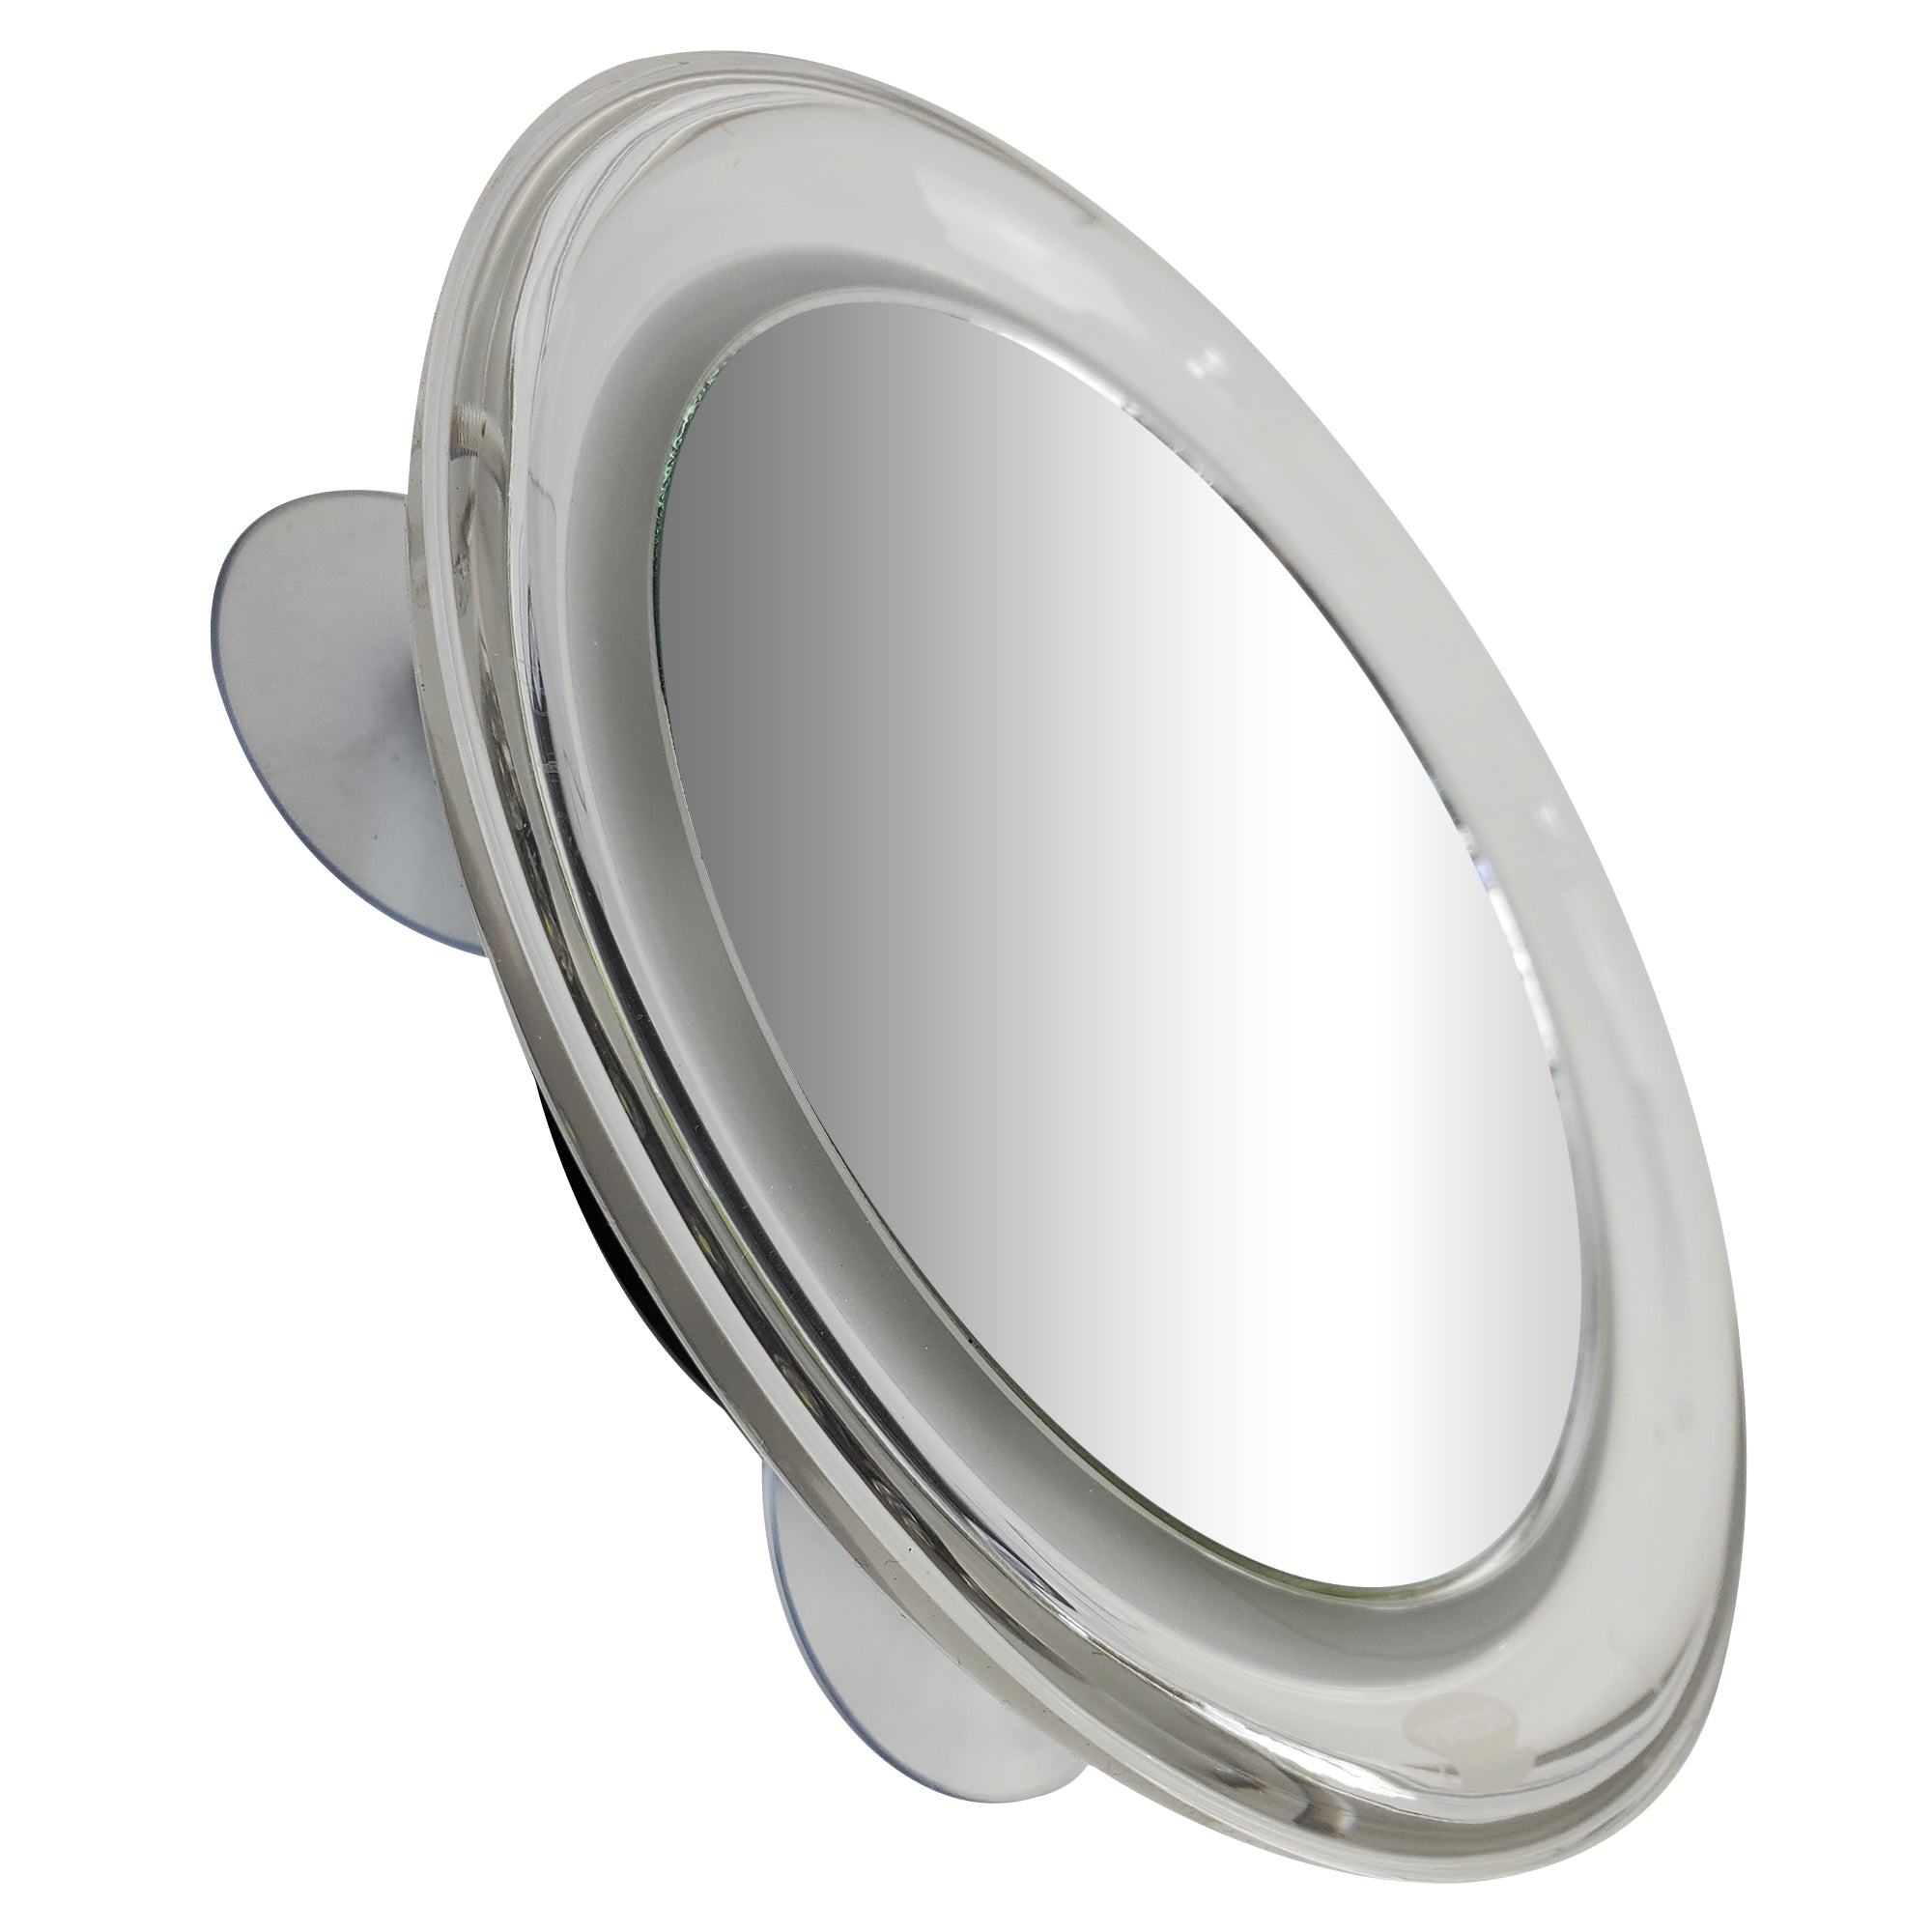 Rucci Lighted Suction Mirror With Magnification (M951 / M952)